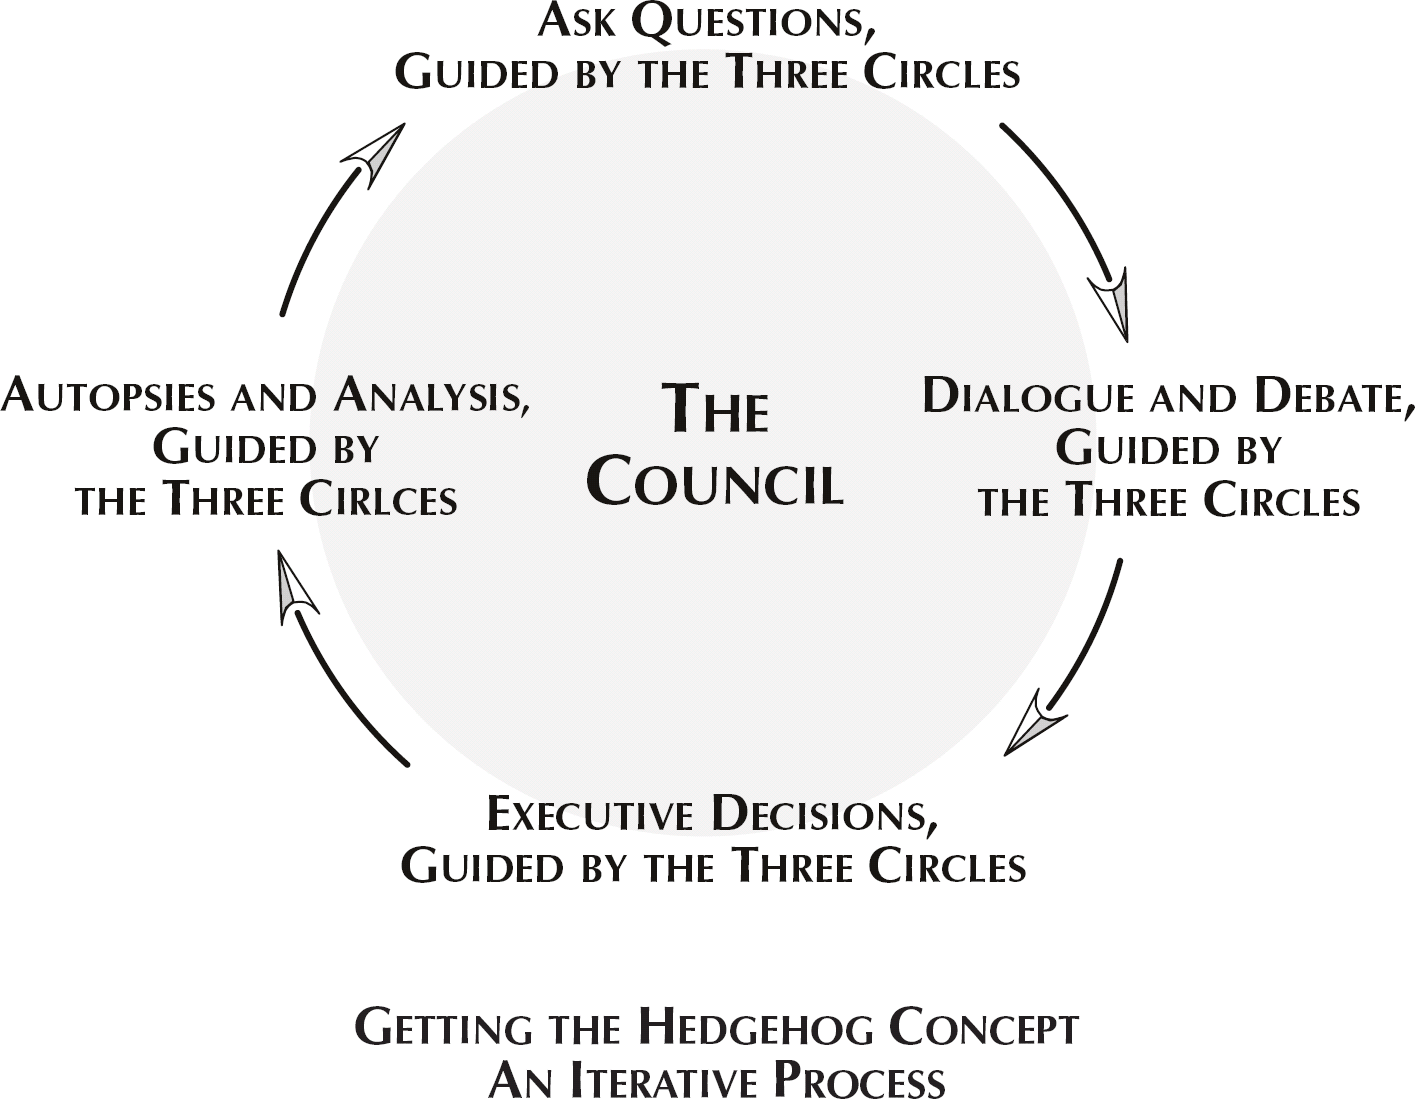 Getting the Hedgehog Concept - An Iterative Process